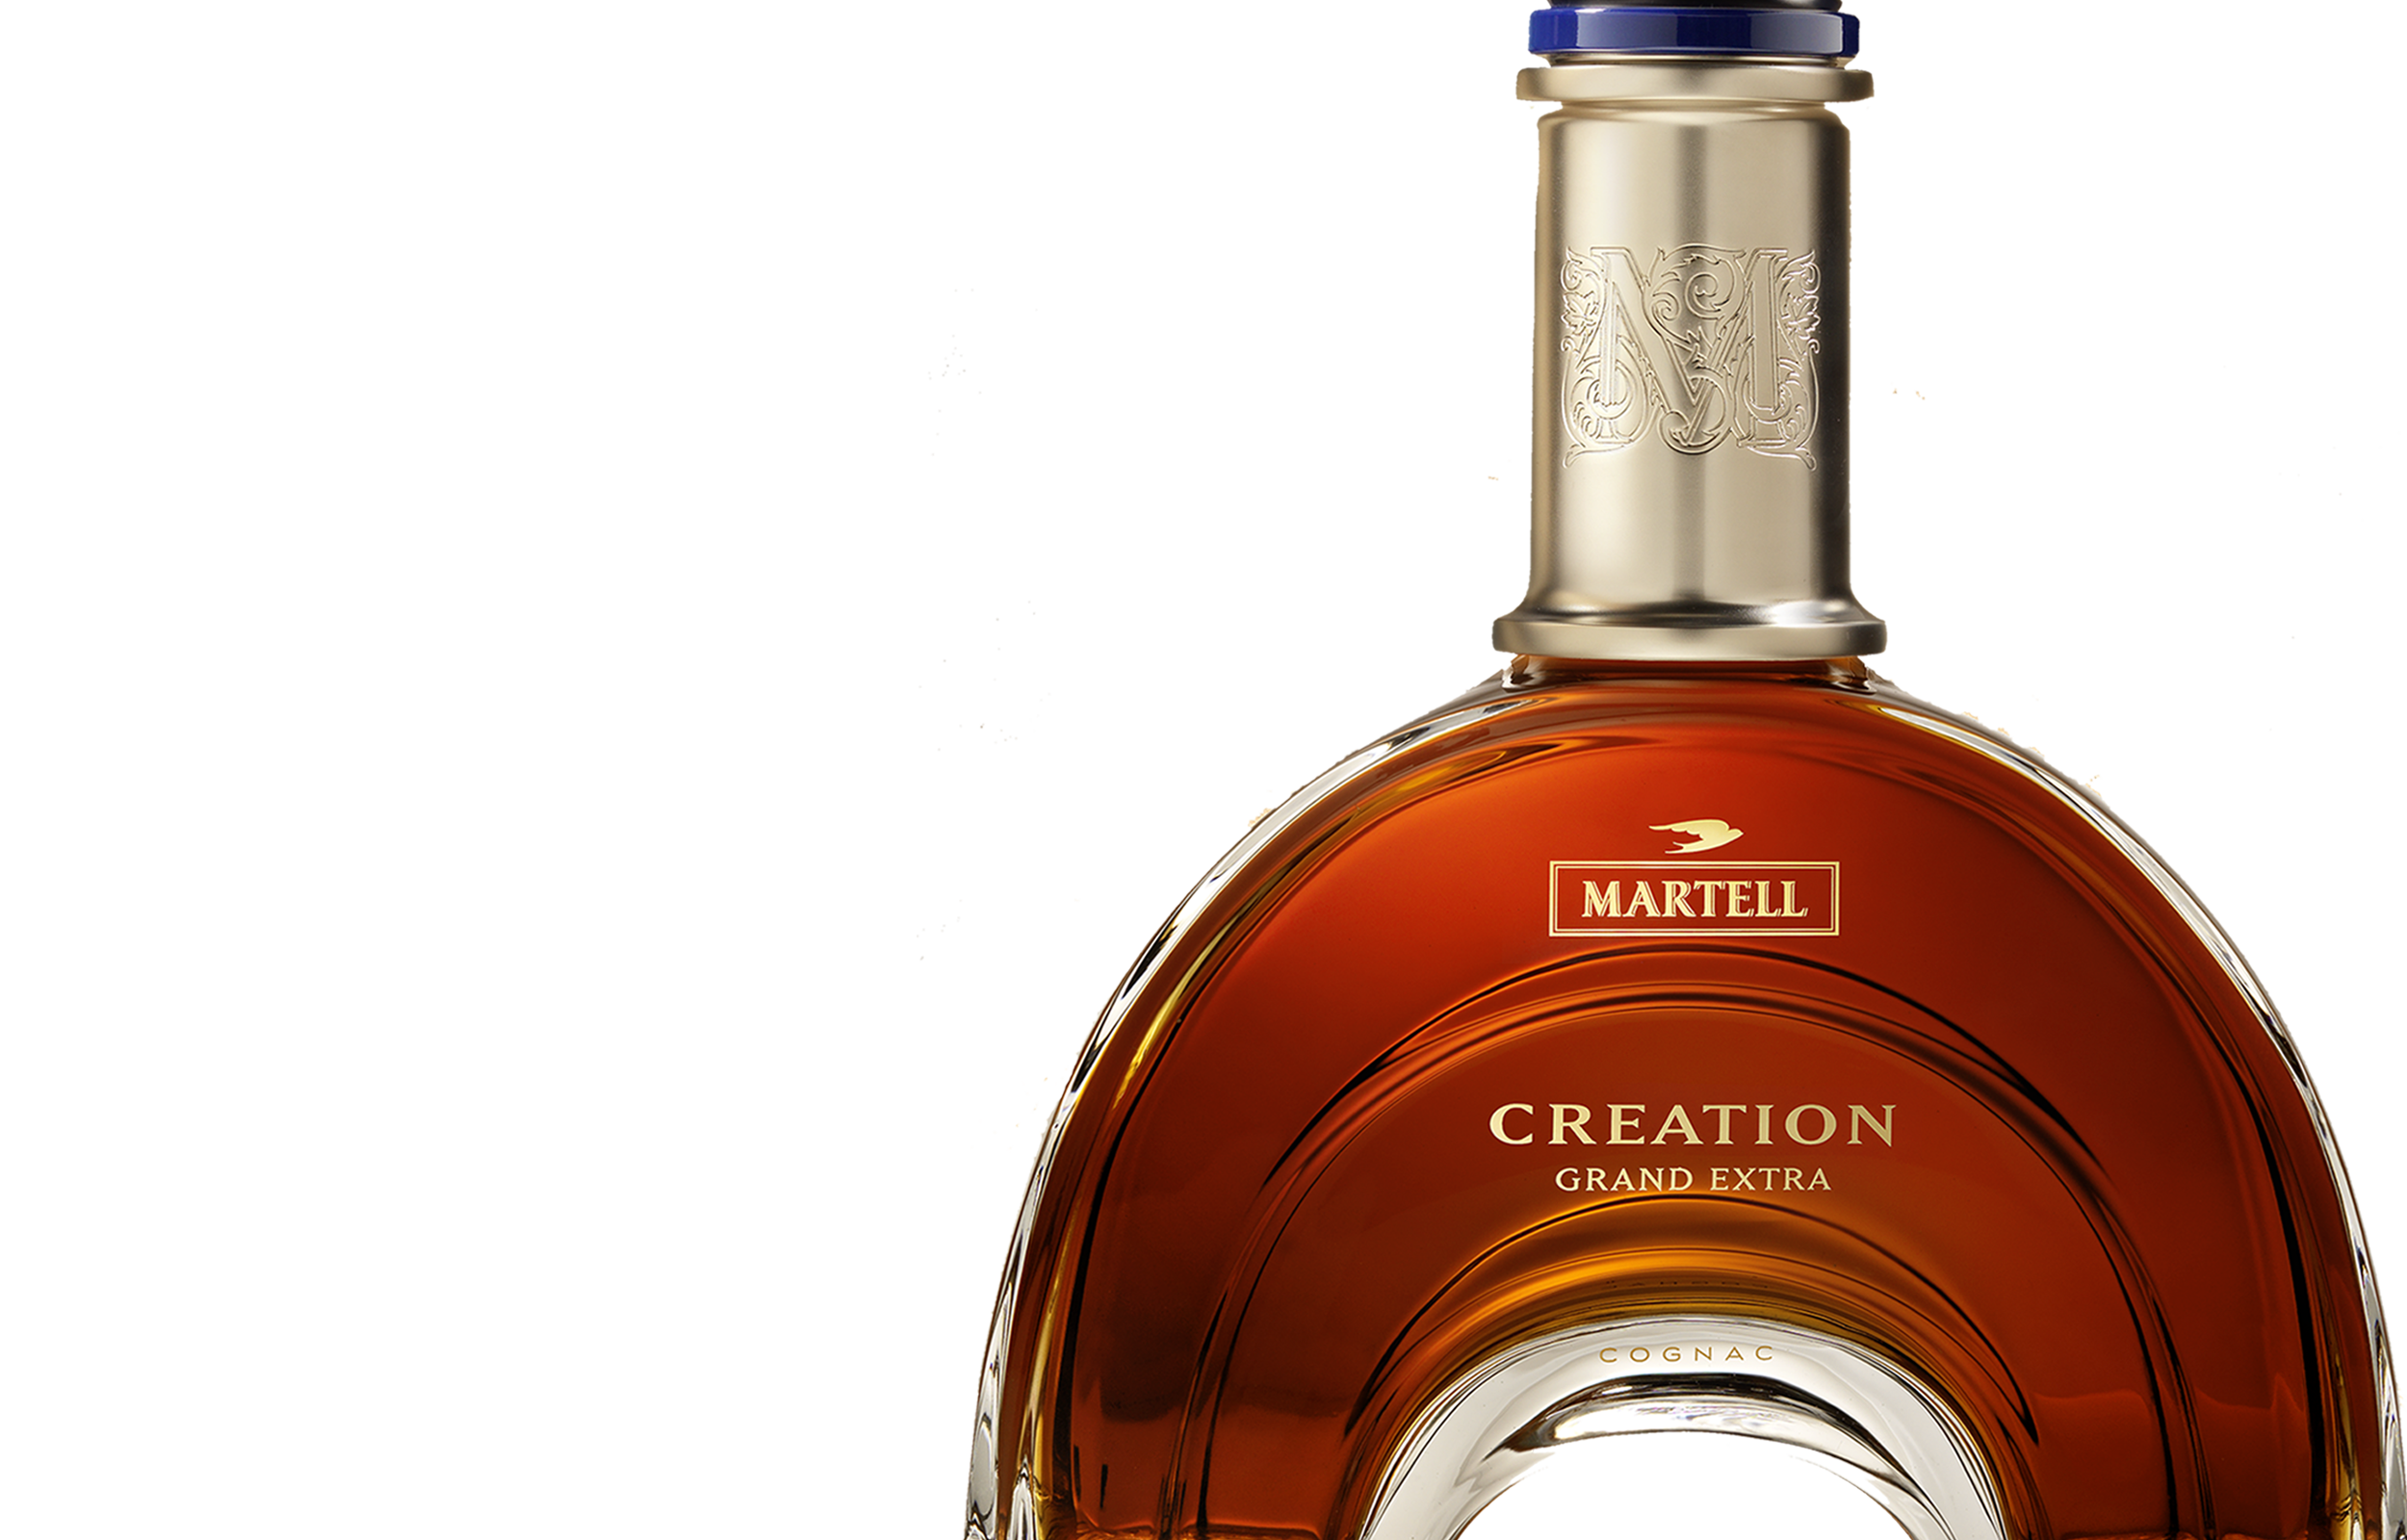 cognac creation grand extra bottle